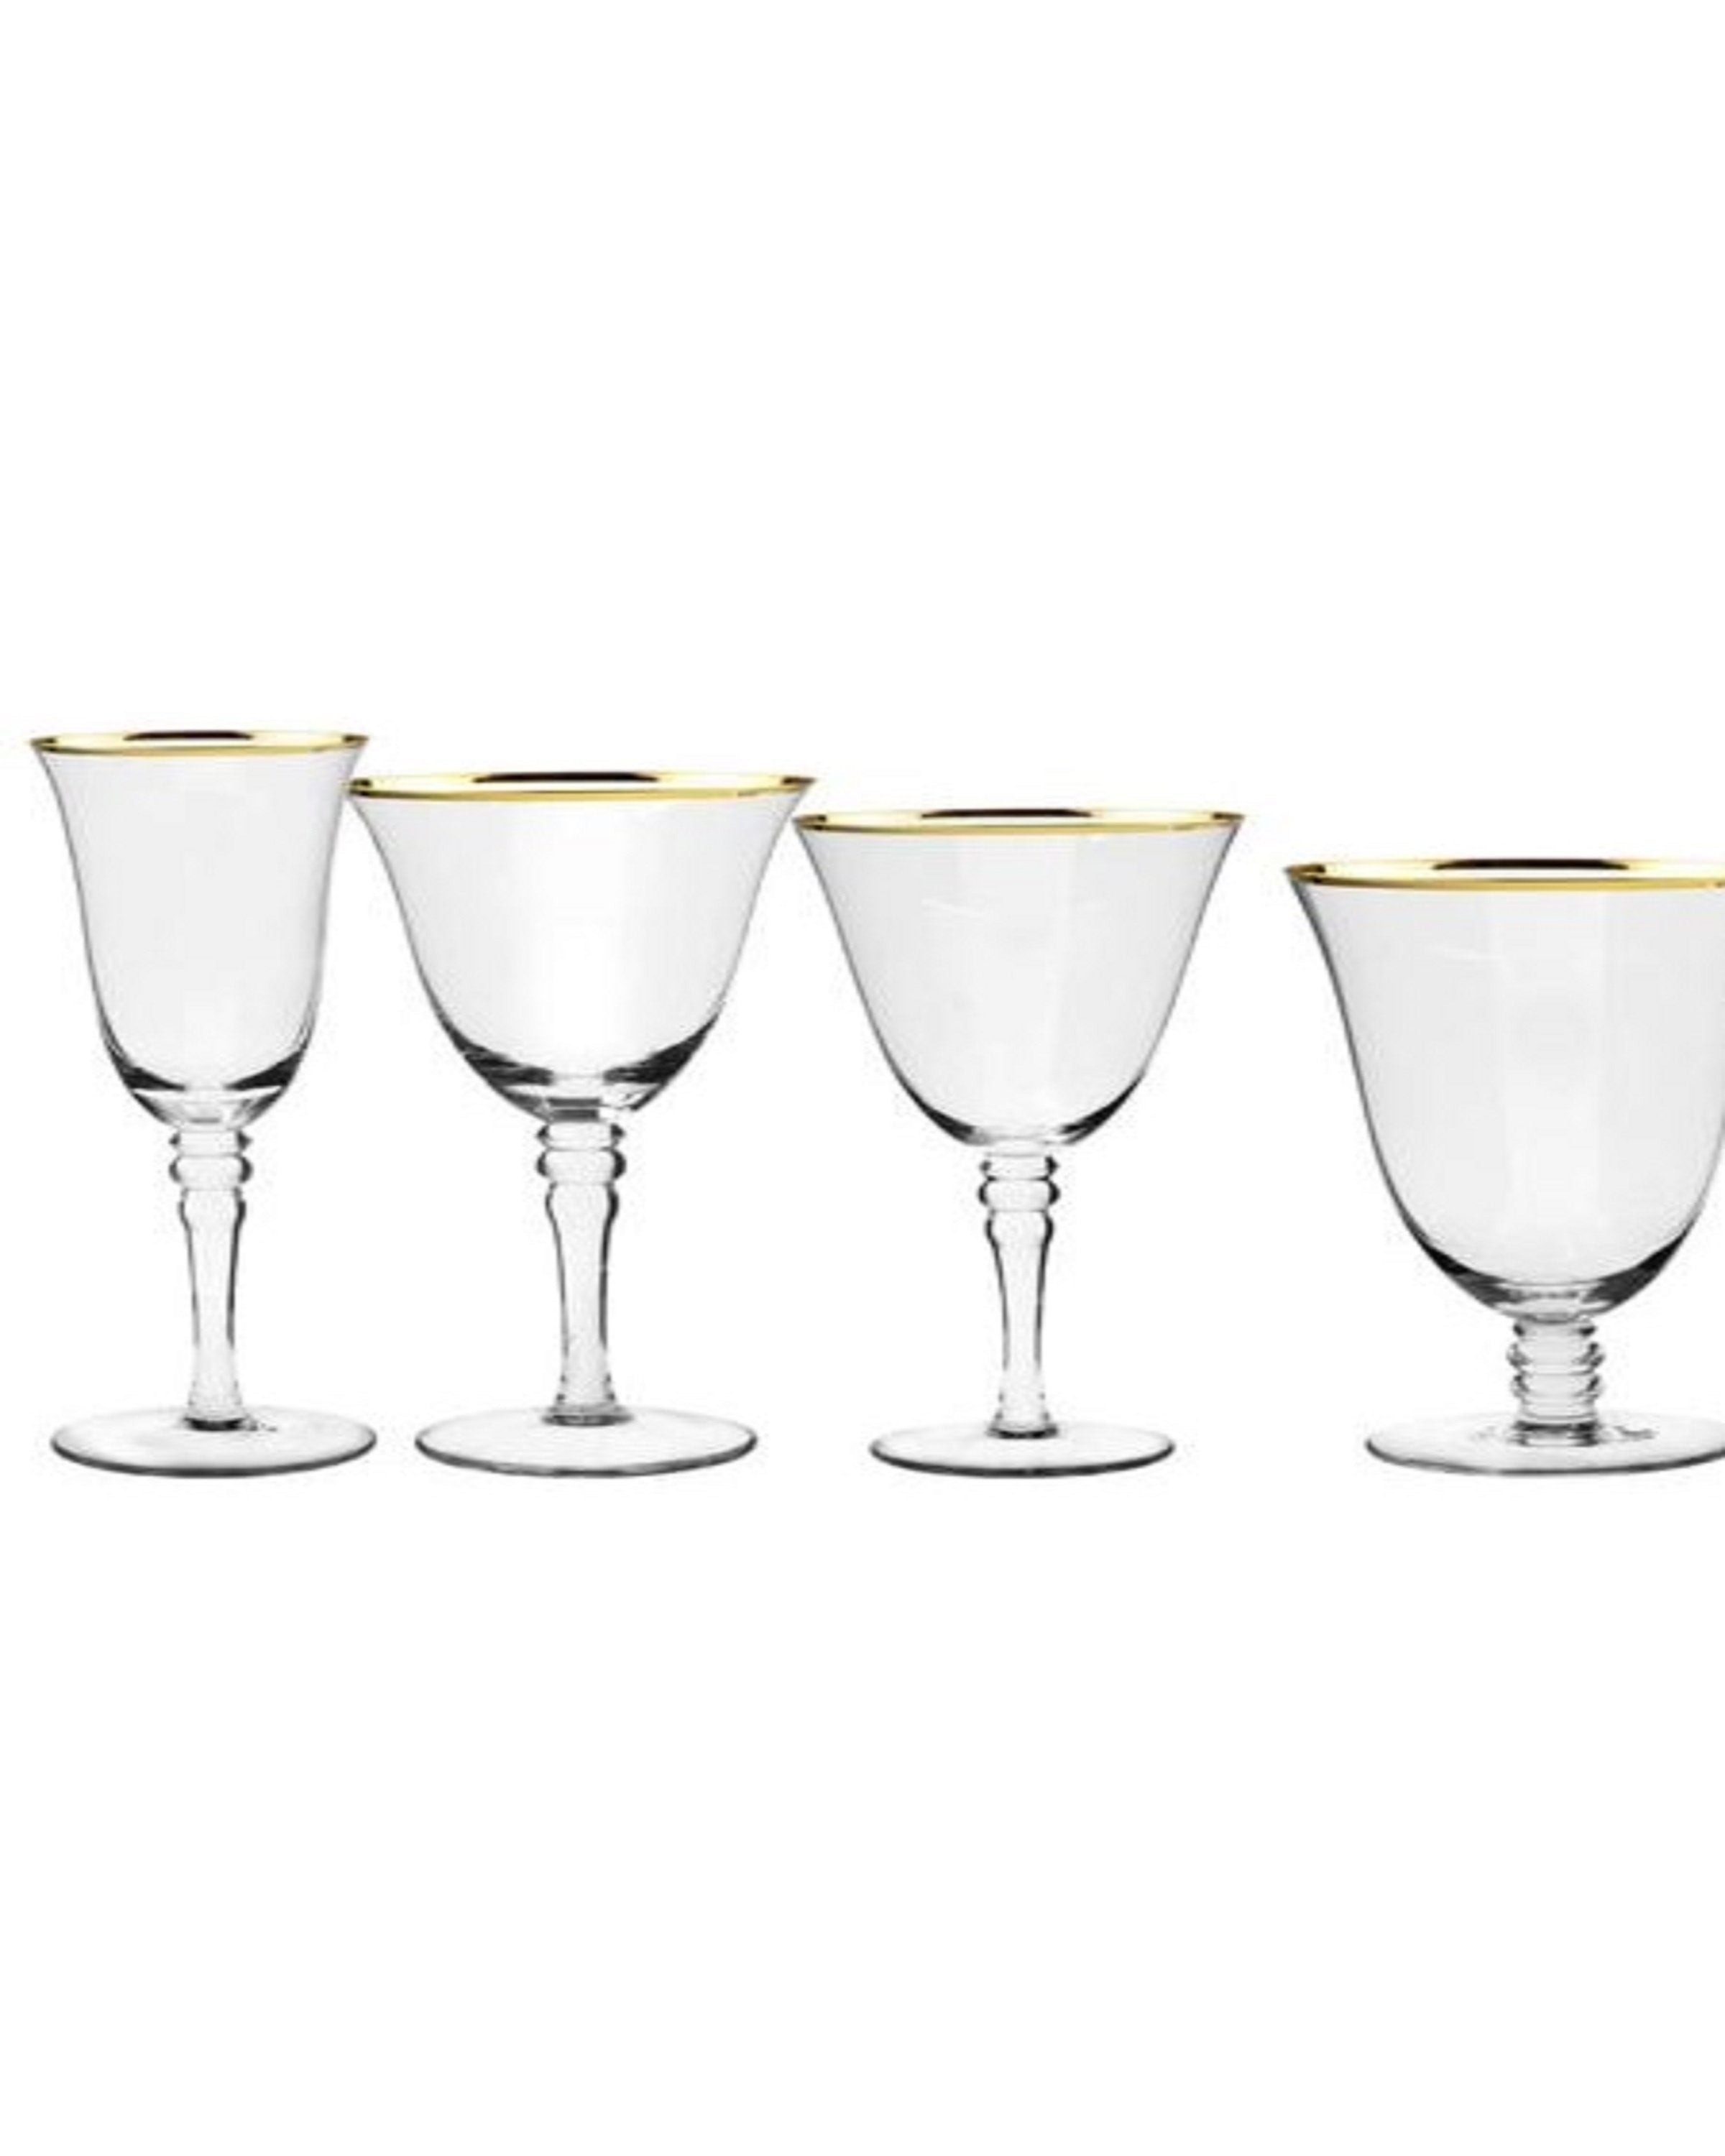 QULIB WINE GLASSES ANGIE HOMES